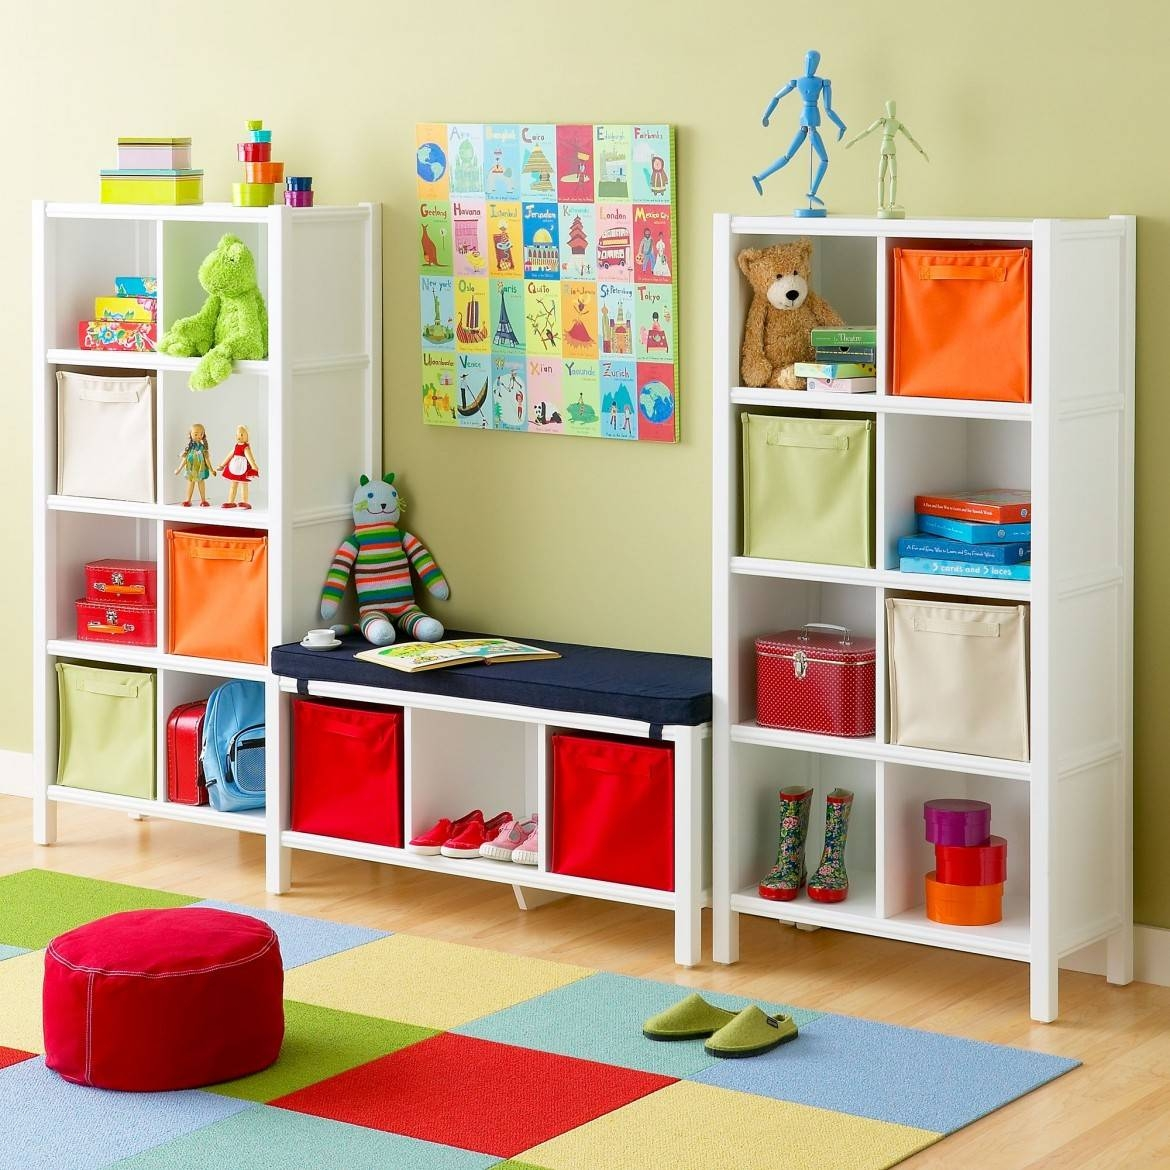 Kids Room : Foam Mattresses Children's Rugs & Play Mats Chairs with Childrens Wardrobes With Drawers And Shelves (Image 17 of 30)